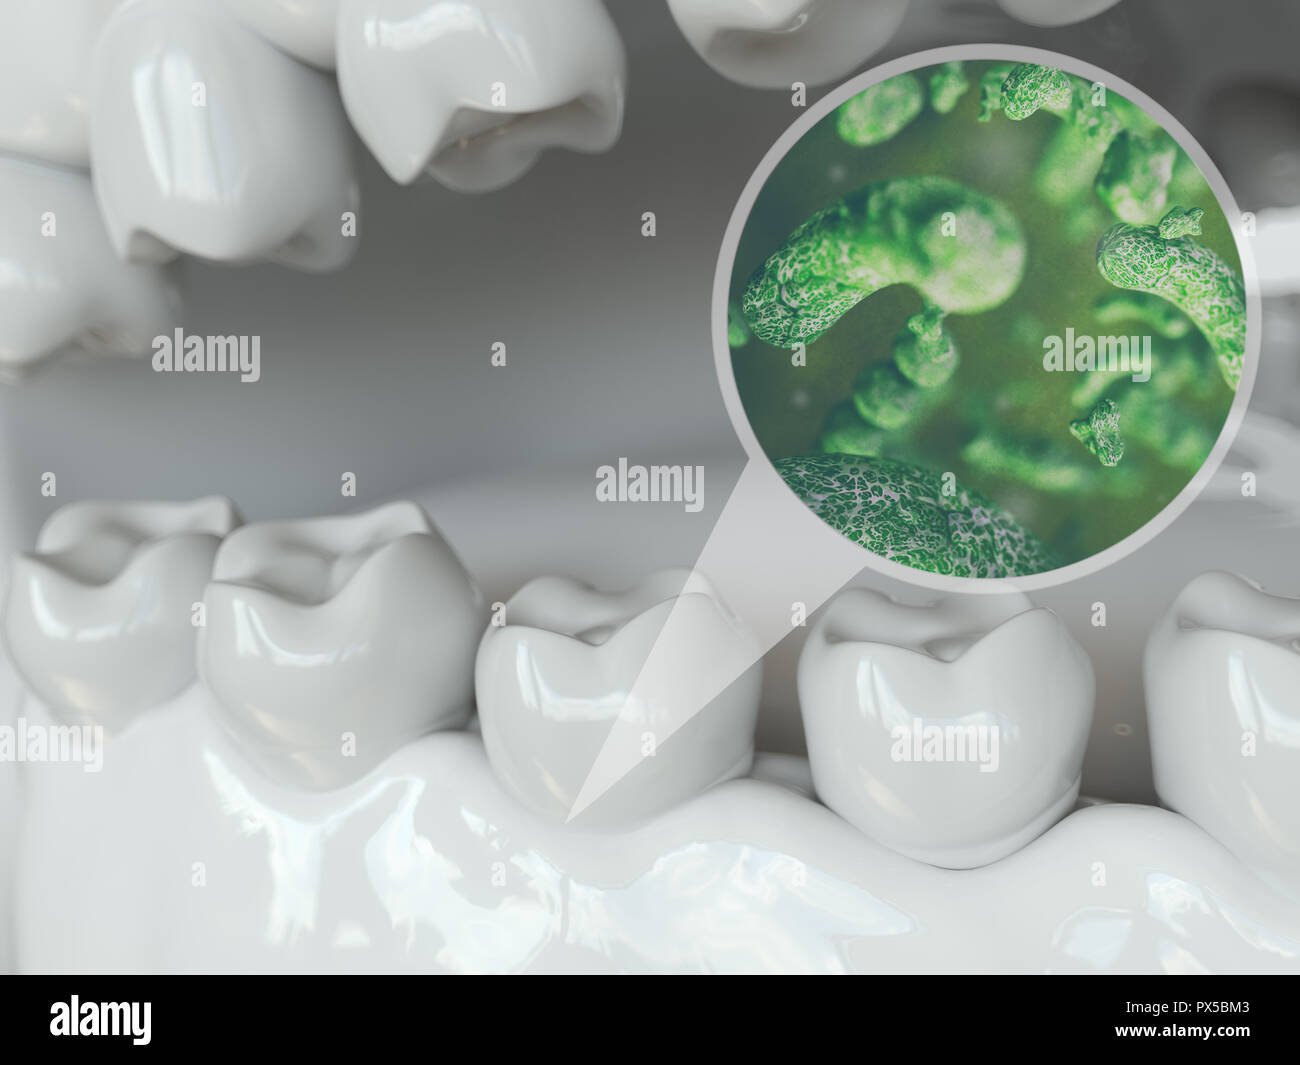 Bacteria and viruses around tooth 2 of 2 -- 3D Rendering Stock Photo